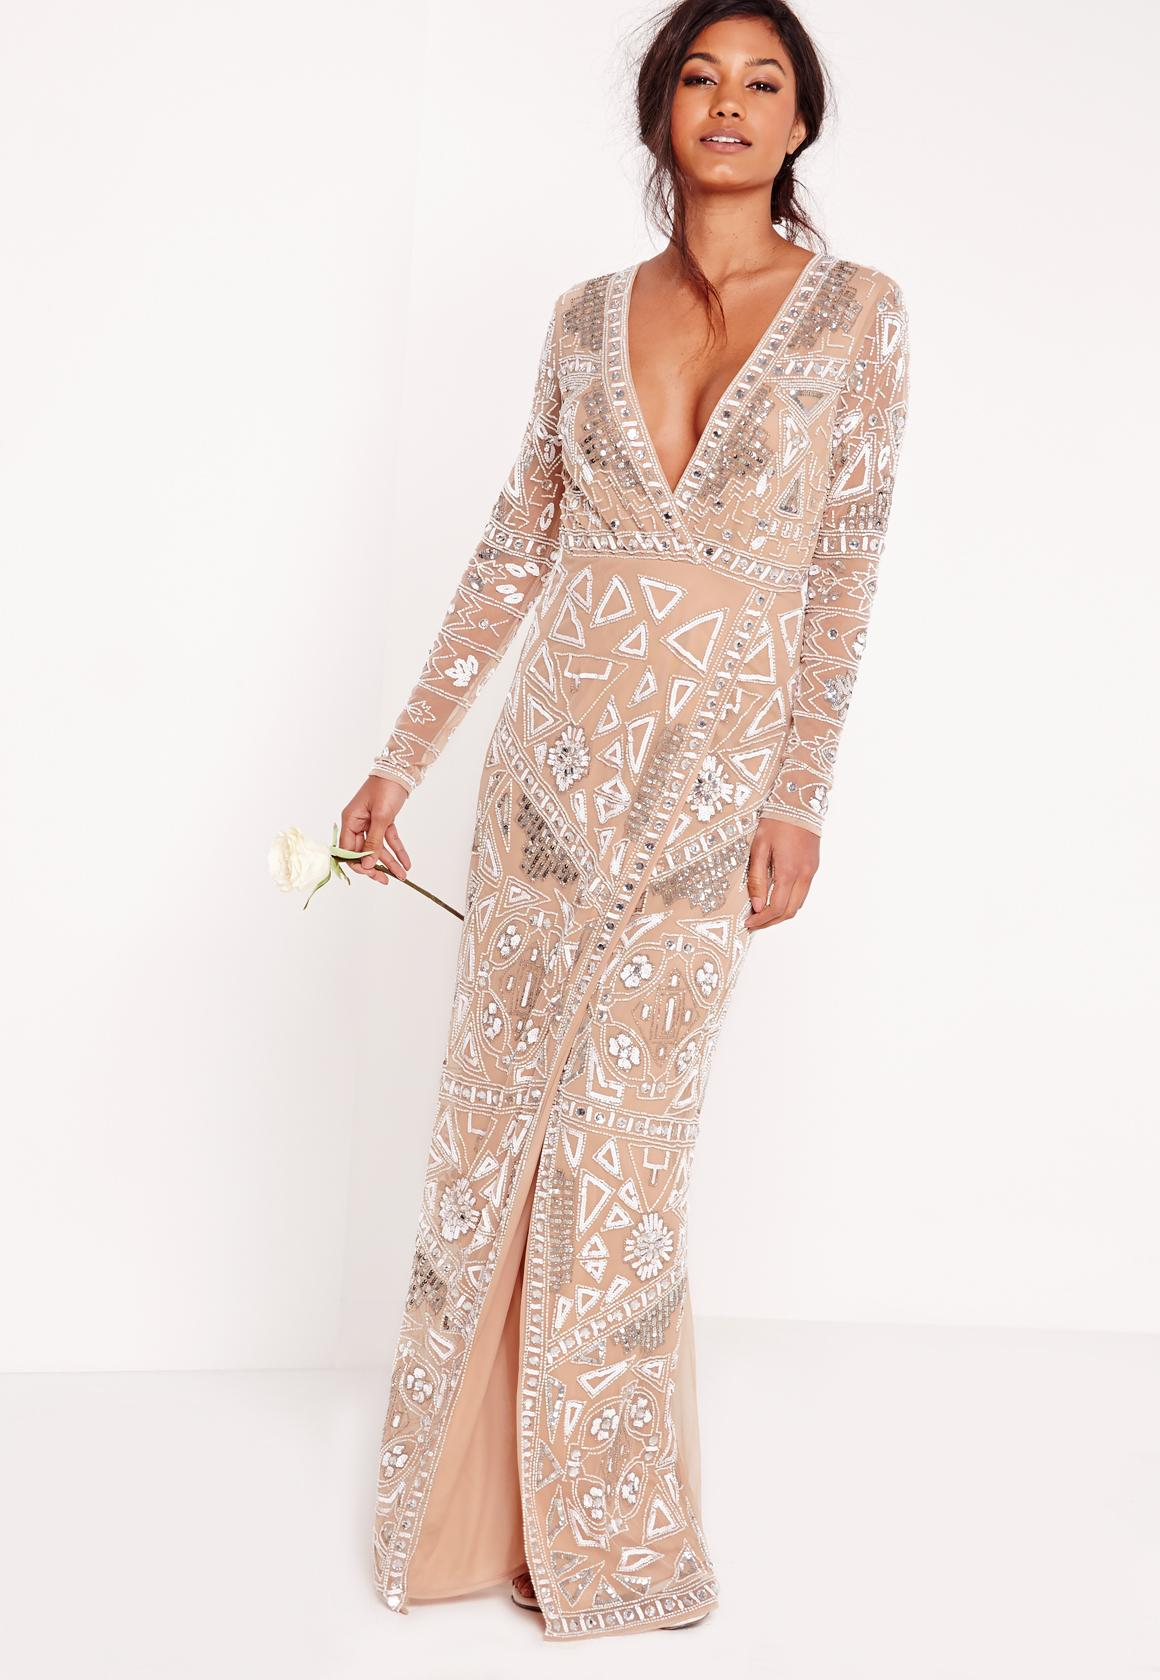 Bridal Sequin Wrap Maxi Dress Silver  Missguided Australia